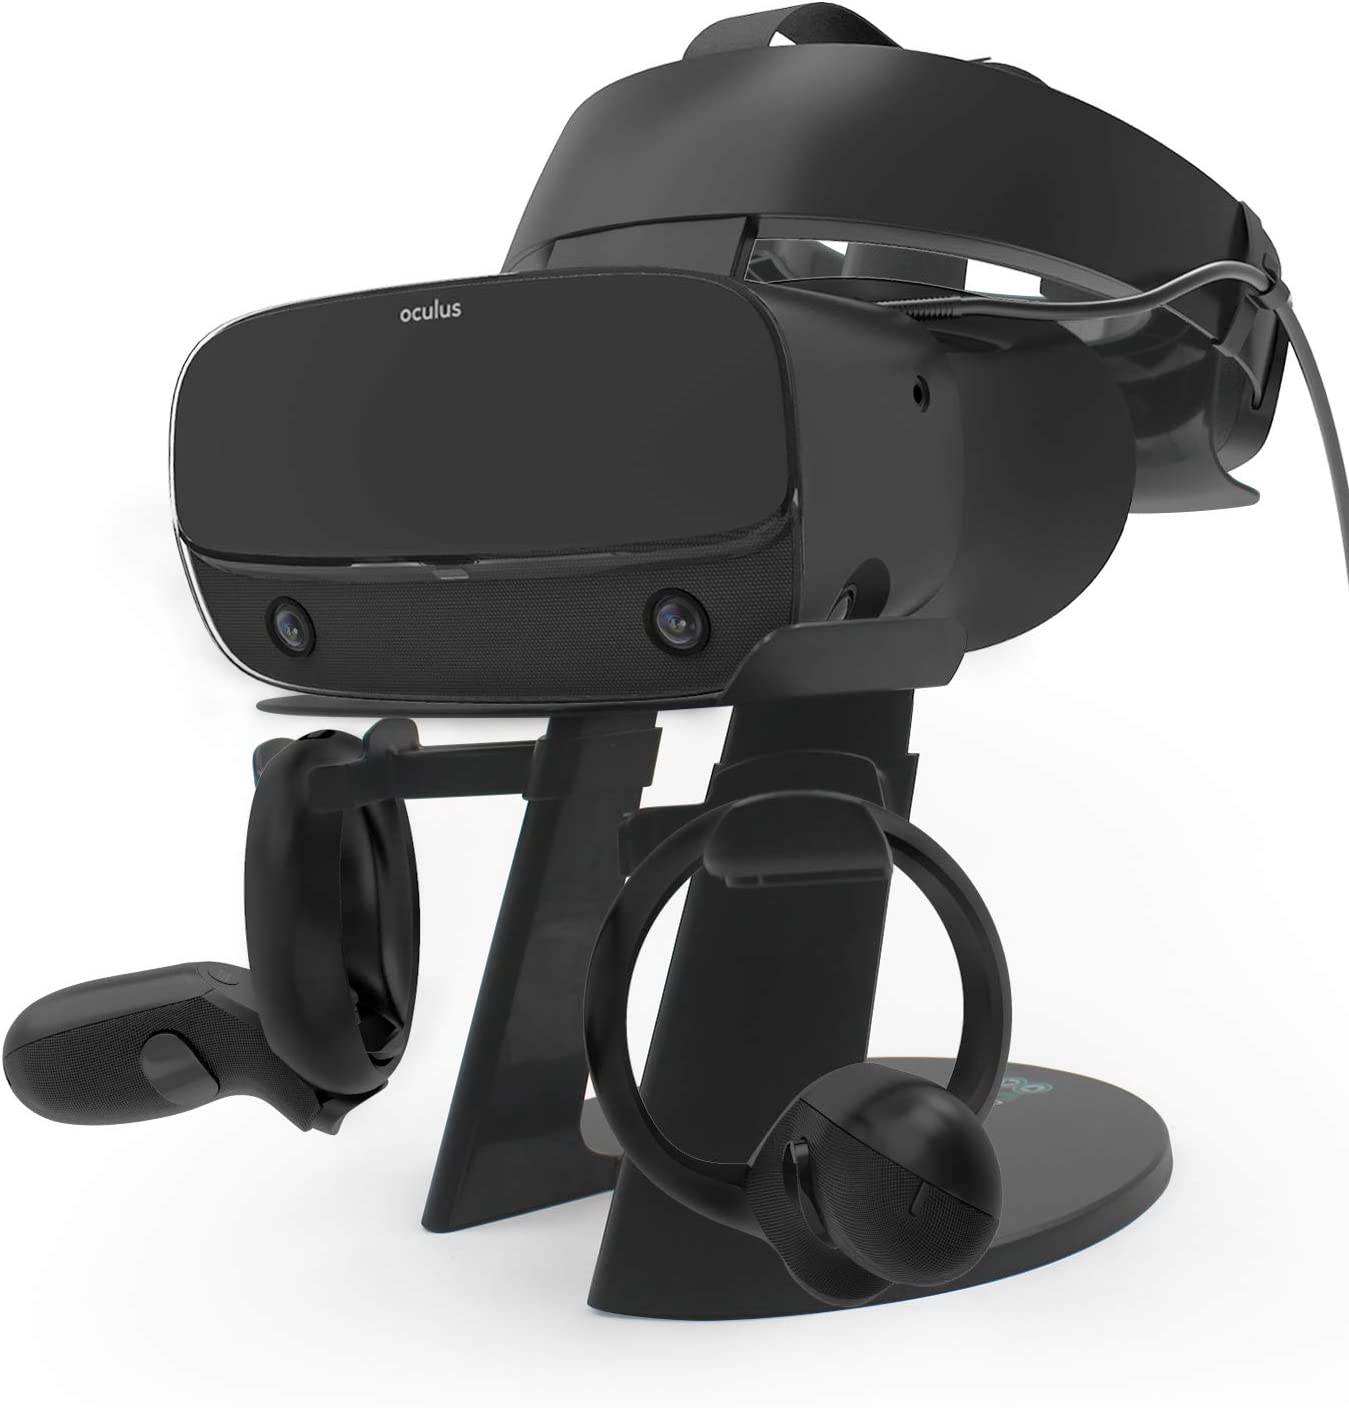 AFAITH VR Stand, VR Headset Display Stand with Game Controller Holder for Oculus Rift S/Oculus Quest/Rift Headset and Other VR Headset